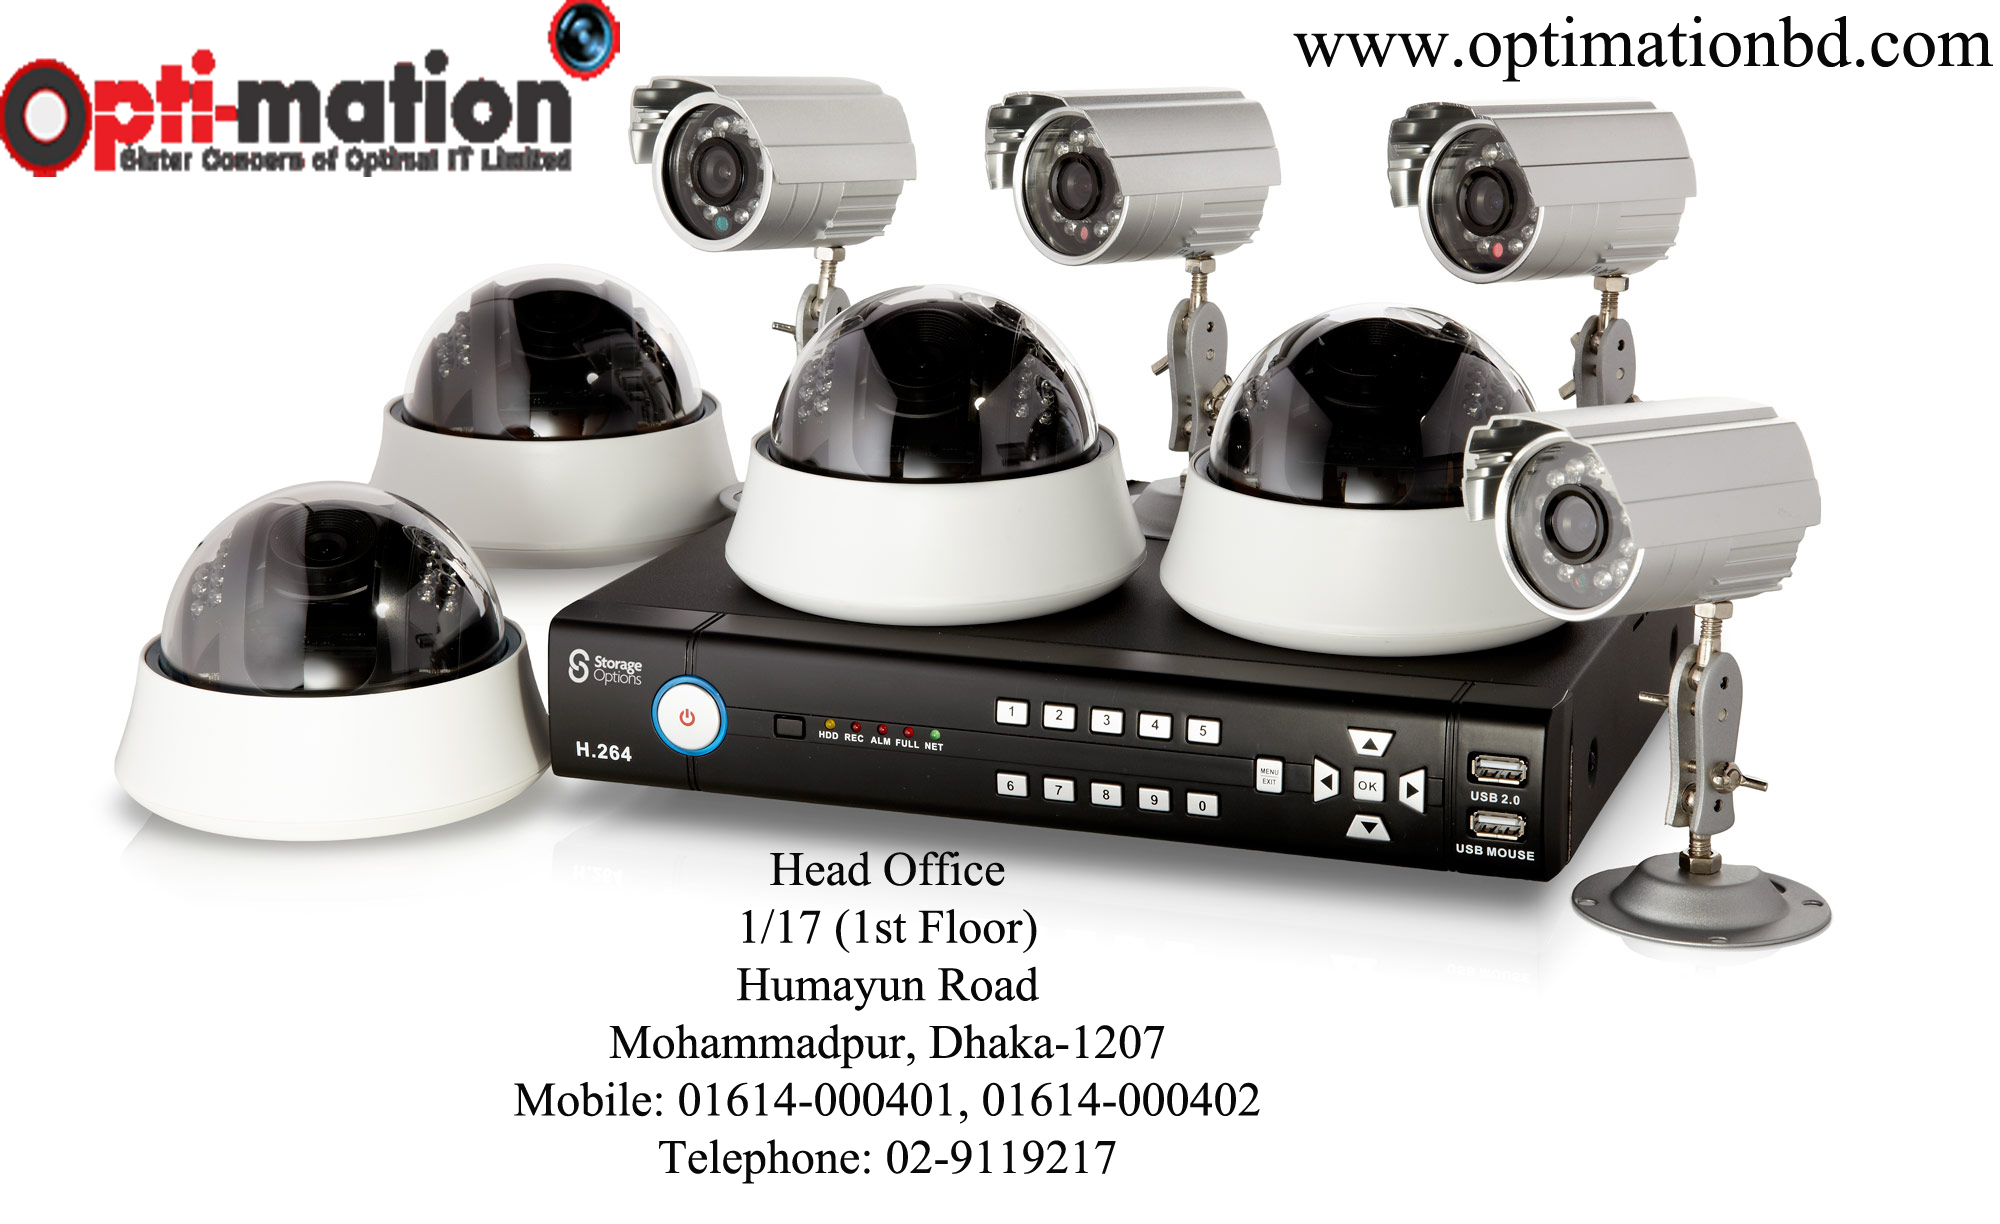 cctv camera bd-optimationbd